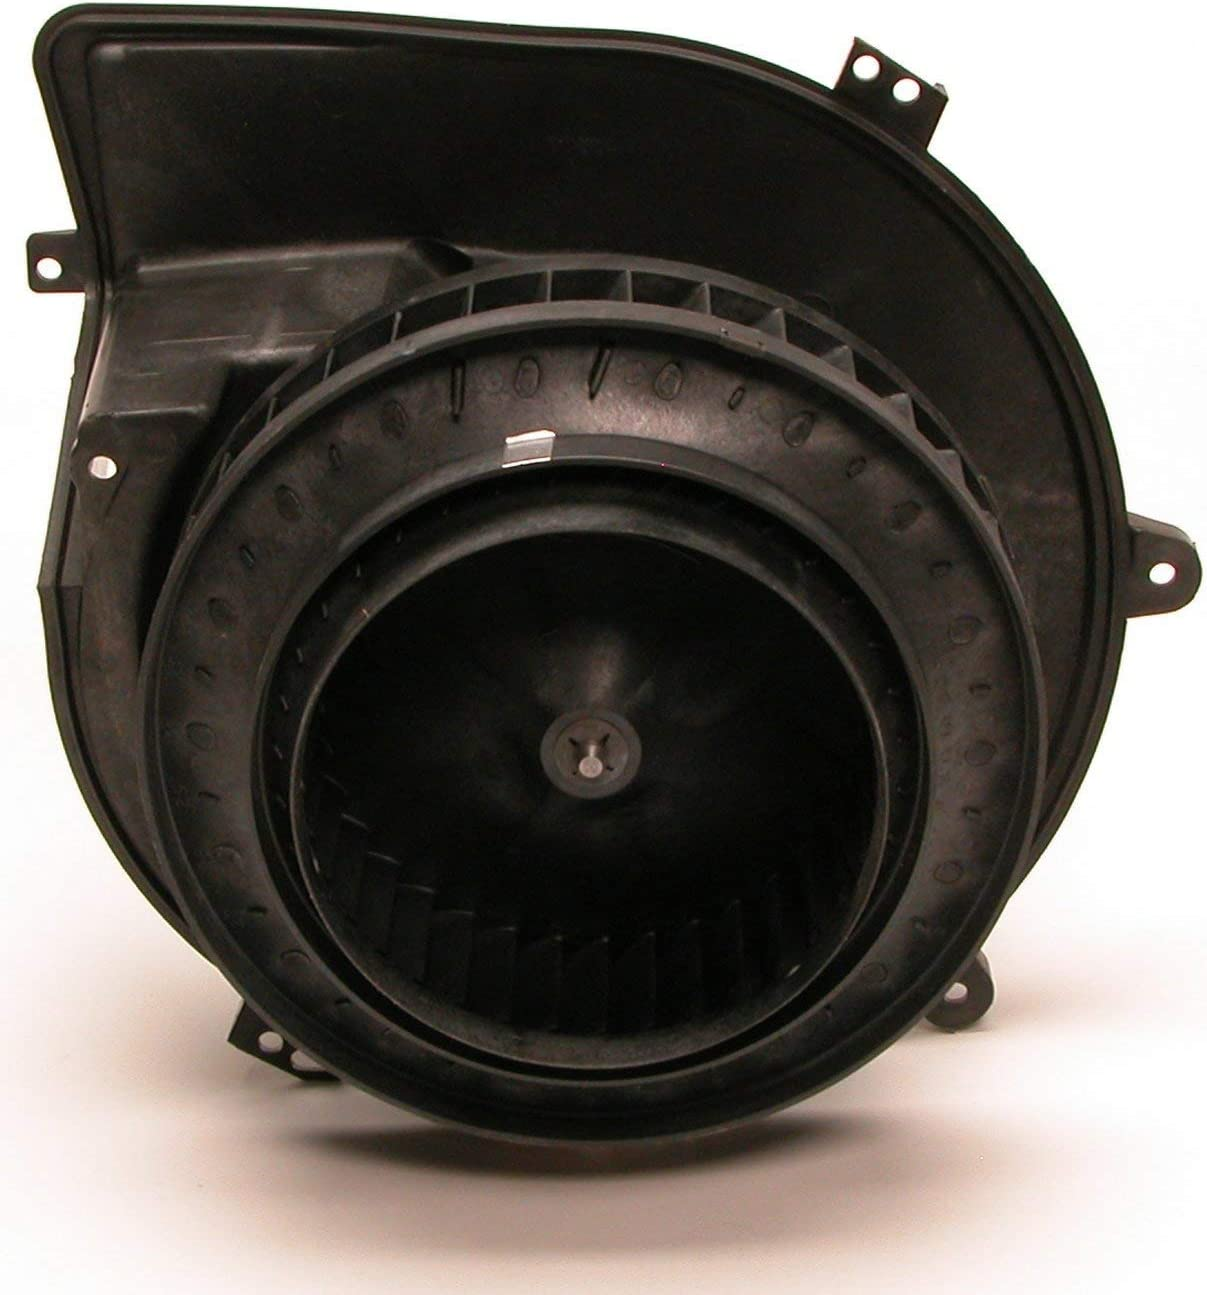 Dekalaii 52495490 700098 Heater Blower Motor with Fan Cage for 2000 2001 Buick LeSabre 2000-2002 Cadillac DeVille 1998-2002 Cadillac Seville